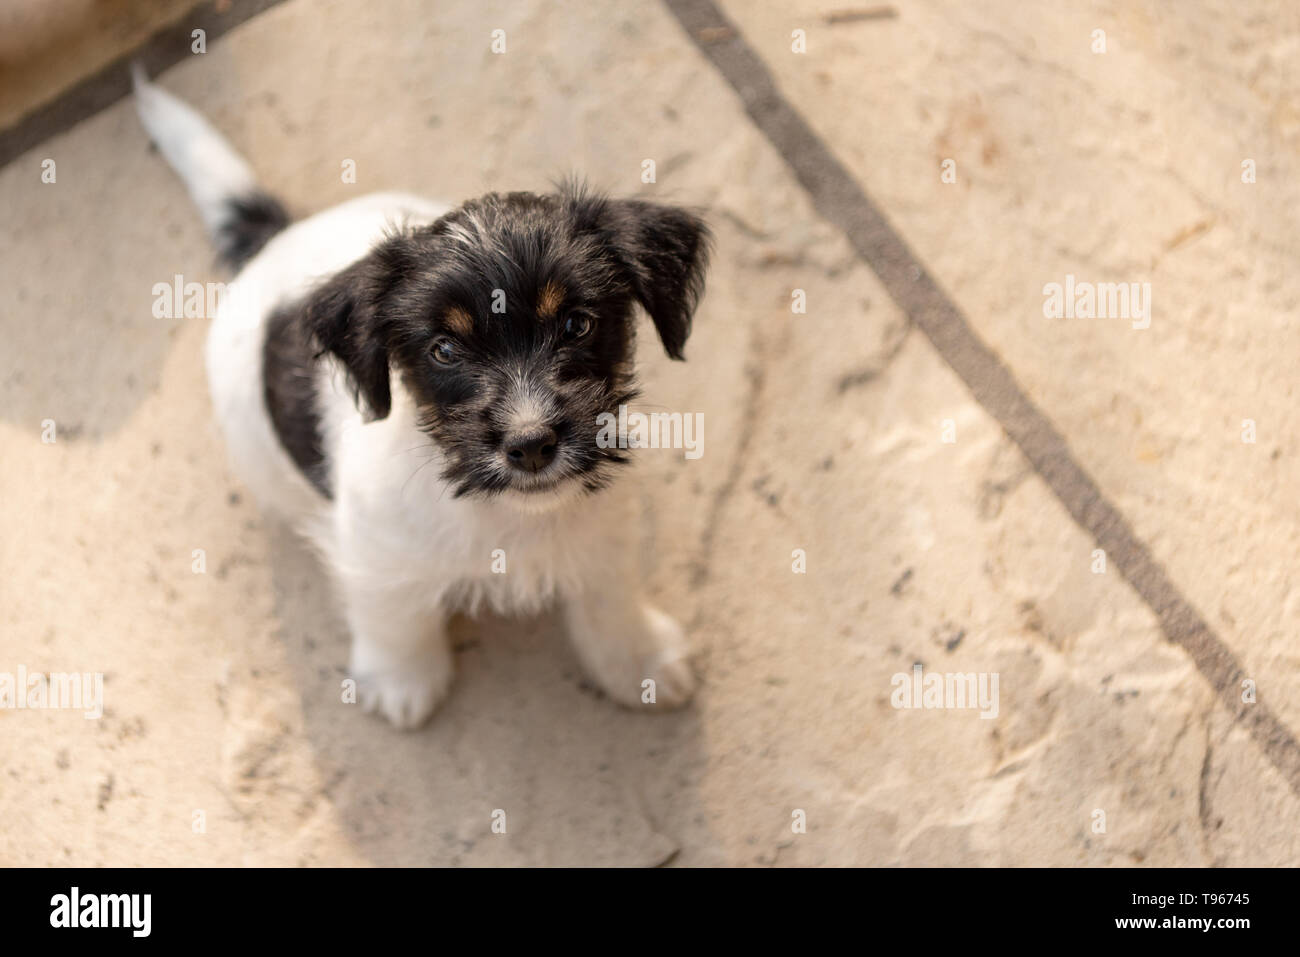 Young Jack Russell Terrier puppy 7,5 weeks old.  Cute small little doggy.  Dog is looking up. Funny perspective - Stock Image